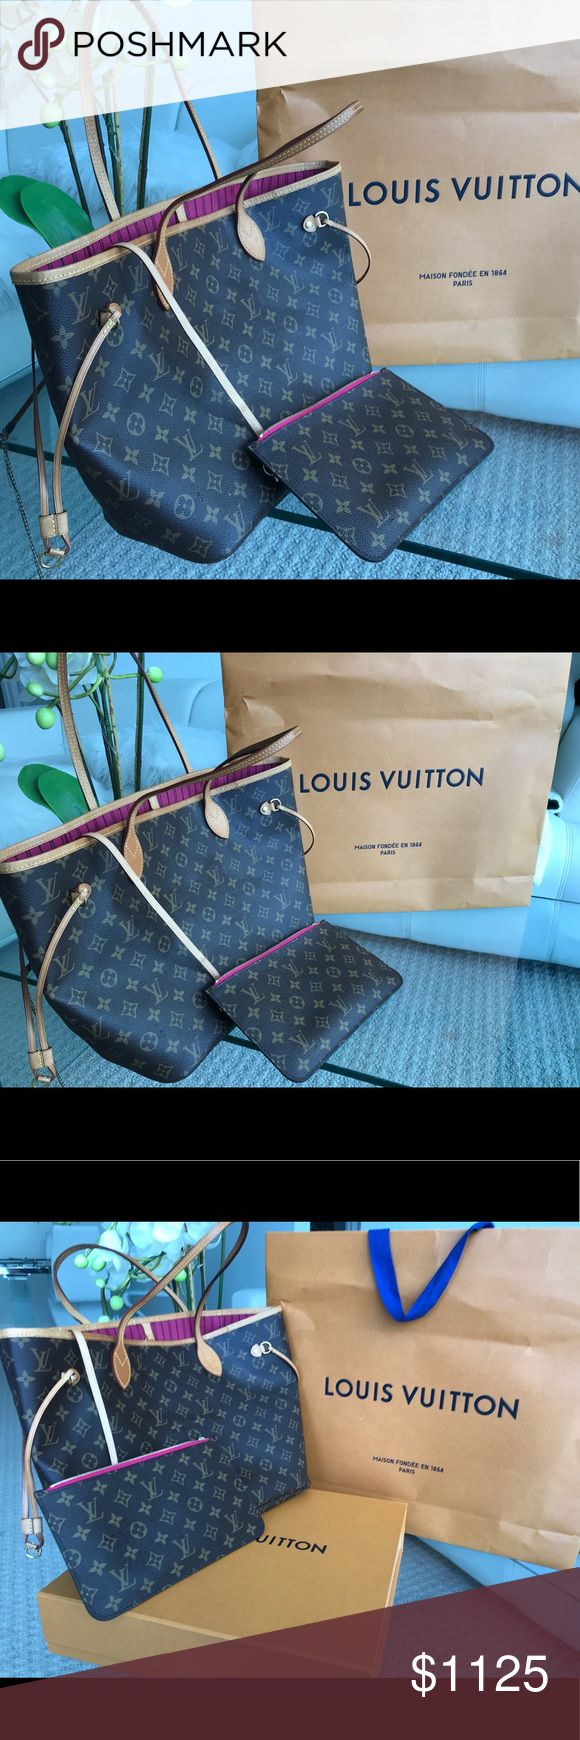 Louis Vuitton Neverful MM Fuchsia Unique beautiful color, in perfect condition, 100% Authentic, with Original Louis Vuitton orange bag and box, bought in the store. Leather in perfect condition! Straps and edges are perfect! Louis Vuitton Bags Totes